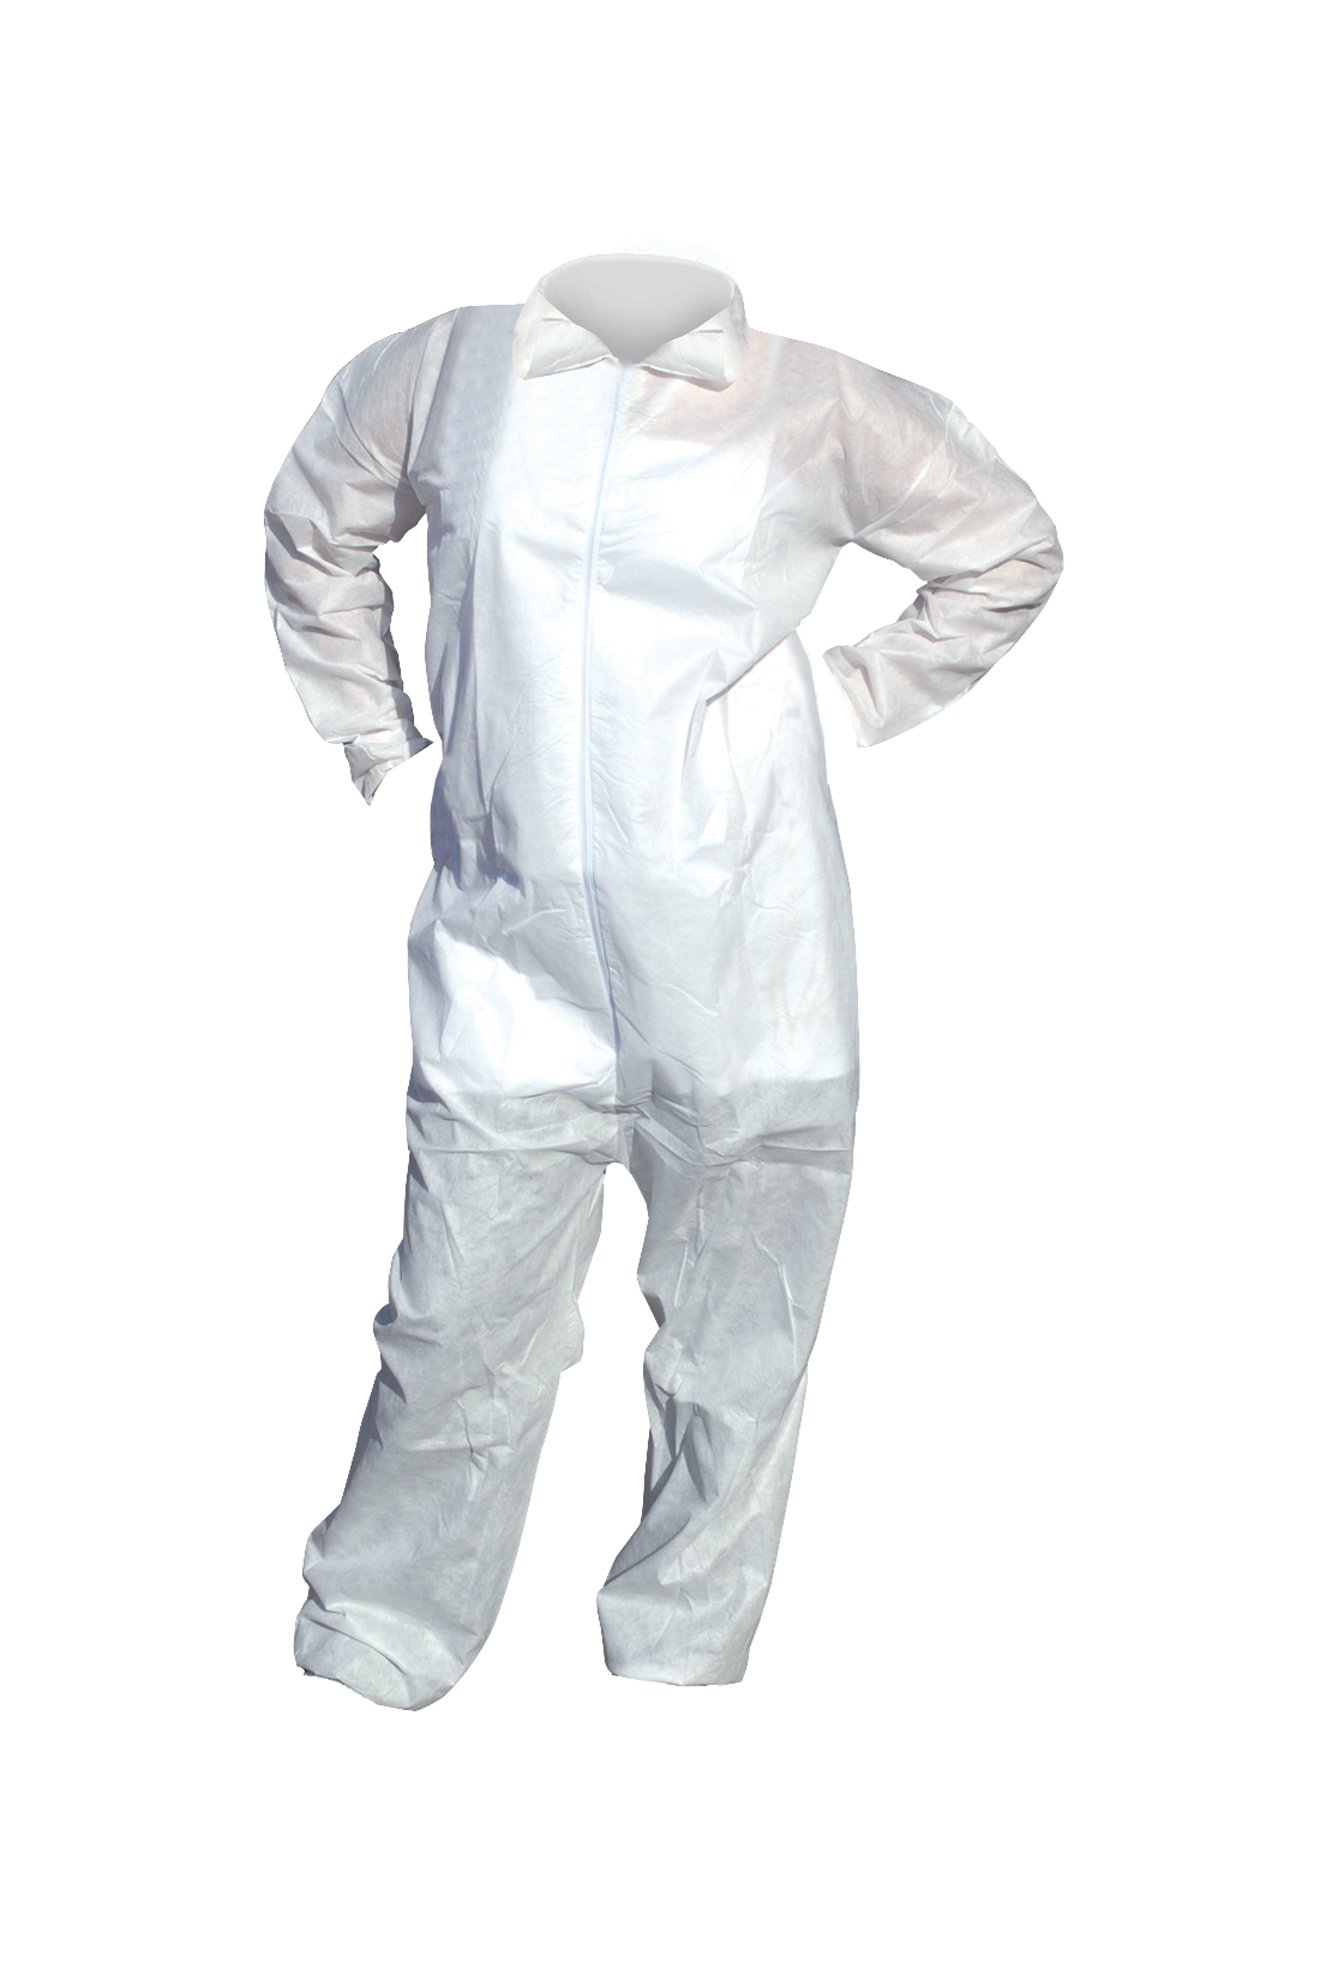 High Five AC203 SMS Polypropylene Opaque Heavy Duty Coverall with Elastic Wrists and Ankles, Large, White (Case of 25)